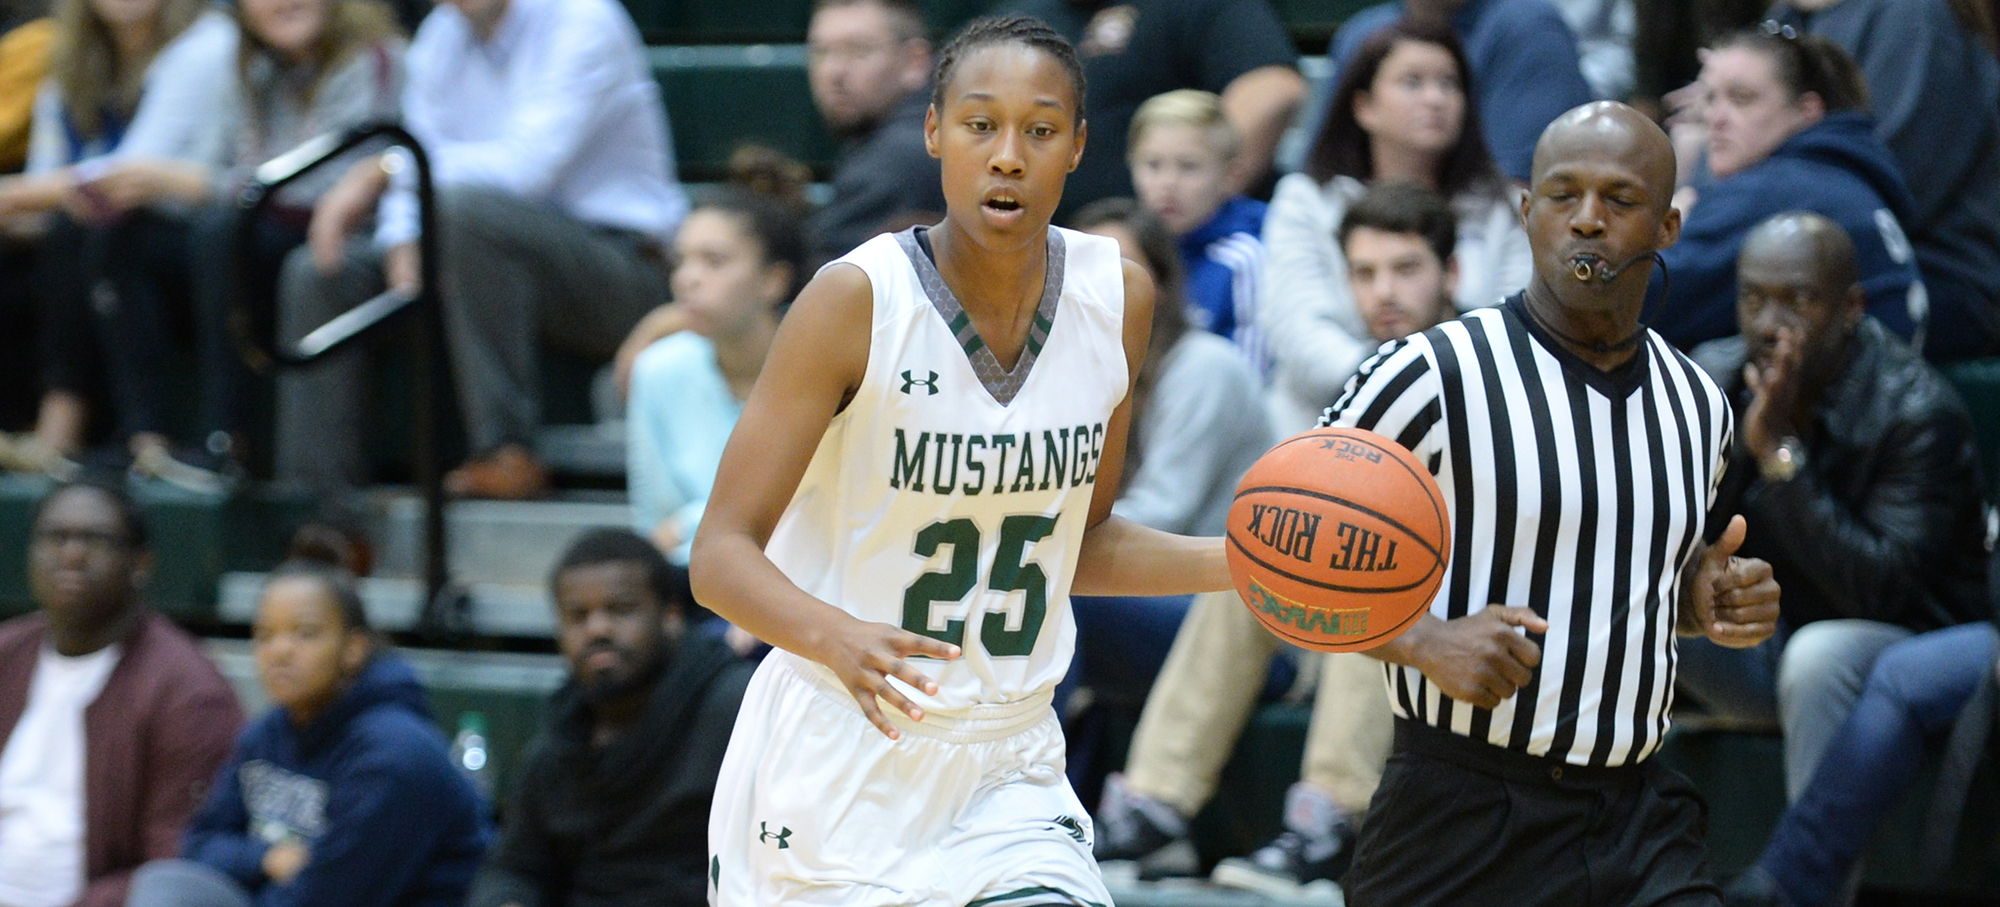 Women's Basketball Rebounds With 72-61 Win Over Stevens